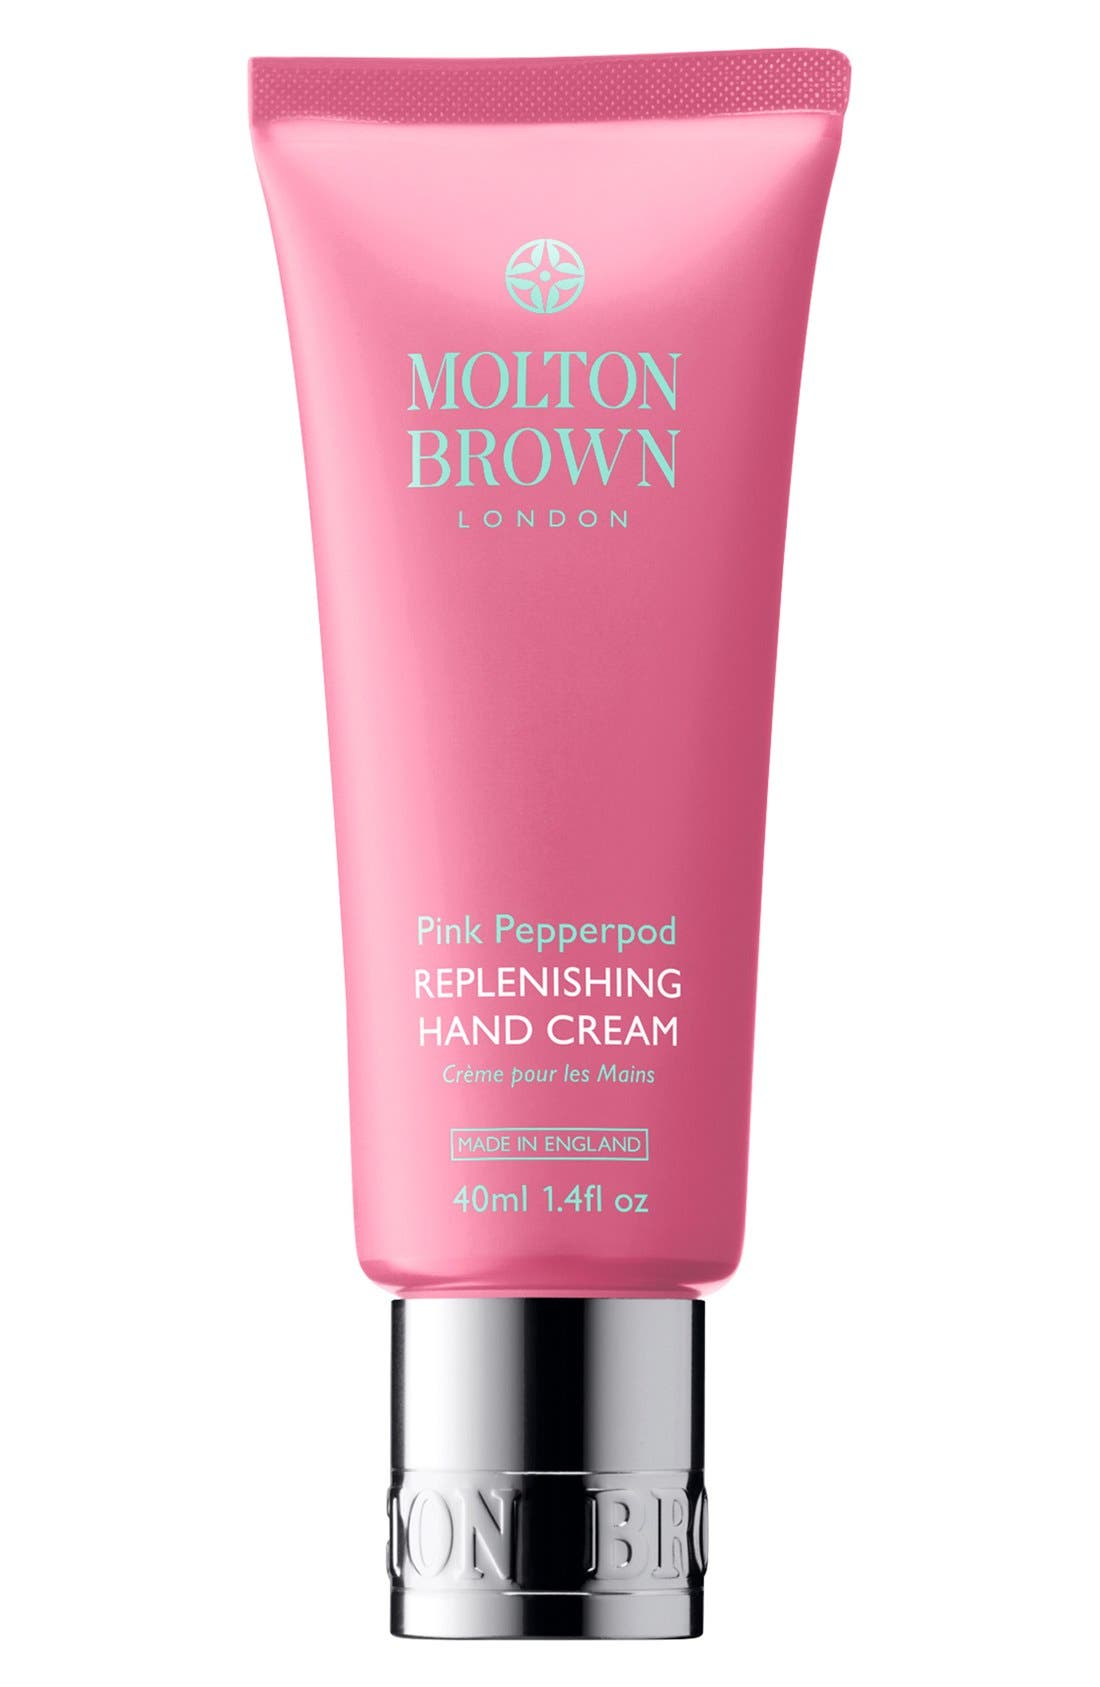 MOLTON BROWN London Replenishing Hand Cream